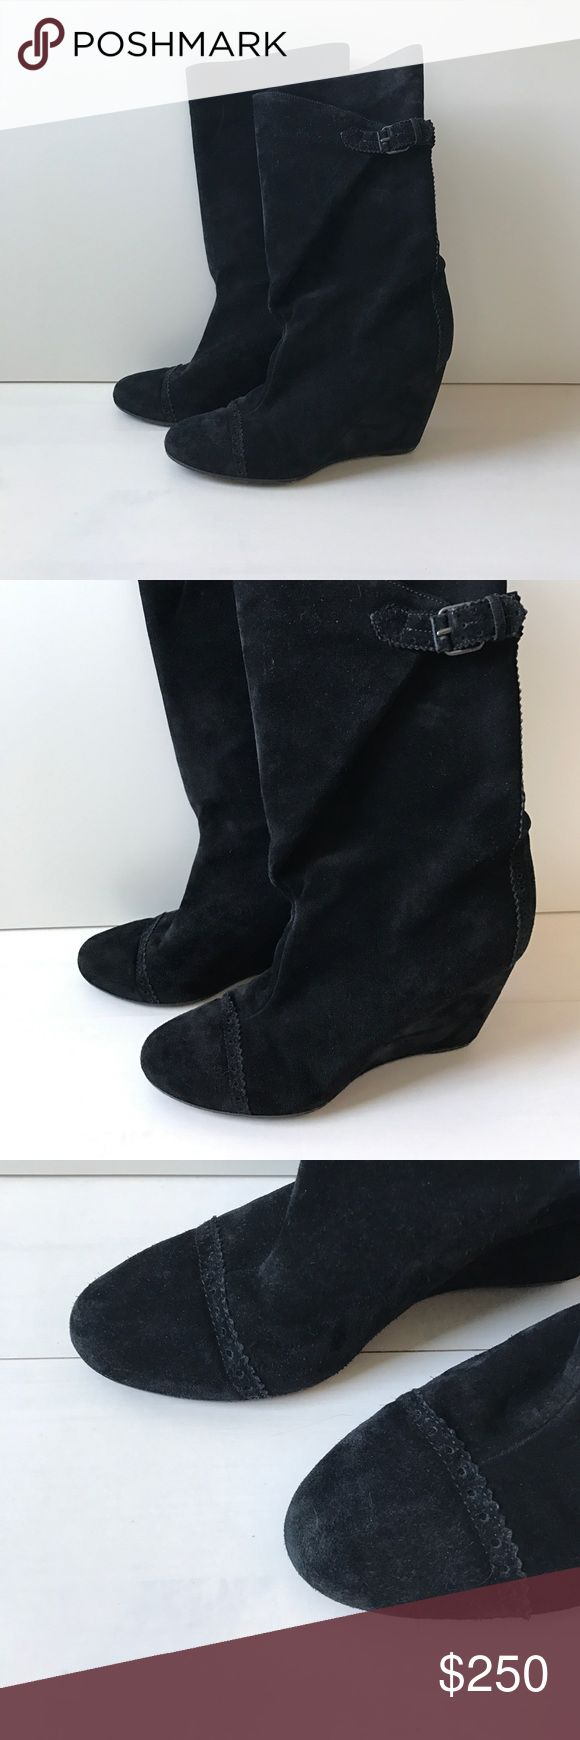 """BALENCIAGA 🌺 SALE was $250 Now $200 🌺 In great condition!! Signs of wear are on sole. A shoe repair person could make these perfect. Mid-calf height, suede wraps around calf and is buckled on side buckle is adjustable! Sweet suede pattern near toe, at buckle and down back of boot. Heel ht: 3 1/2"""". Made in Italy - Sz says 38 1/2, I am a 37 - 37 1/2 and they fit perfectly! Balenciaga Shoes Heeled Boots"""